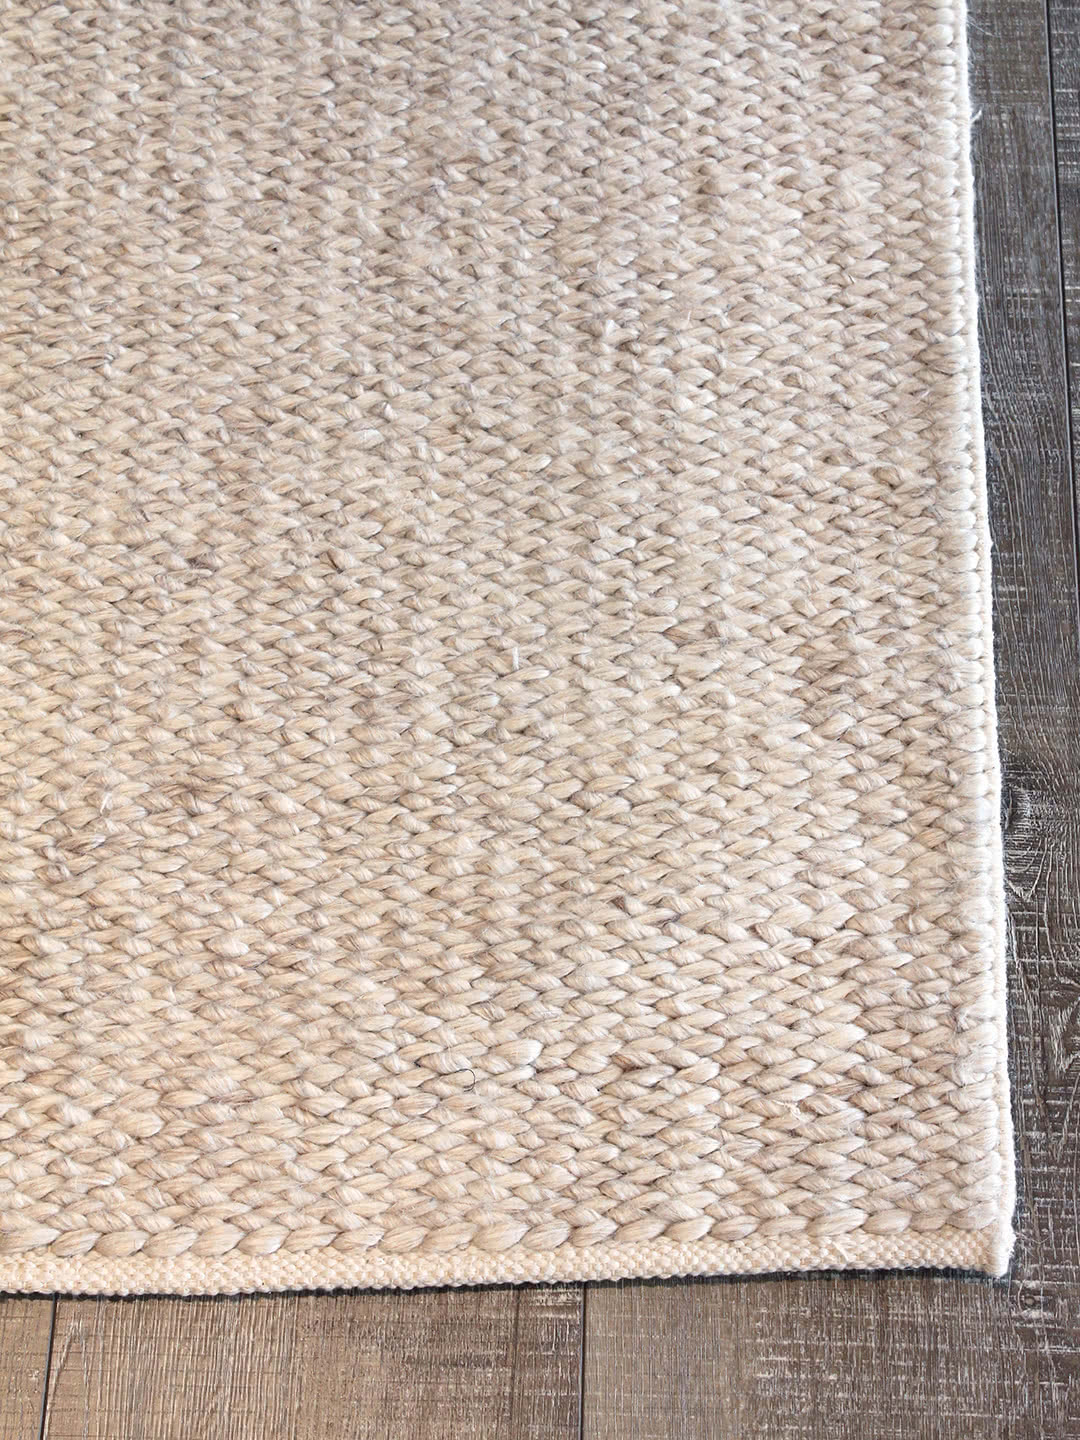 Beige wool rugs Perth